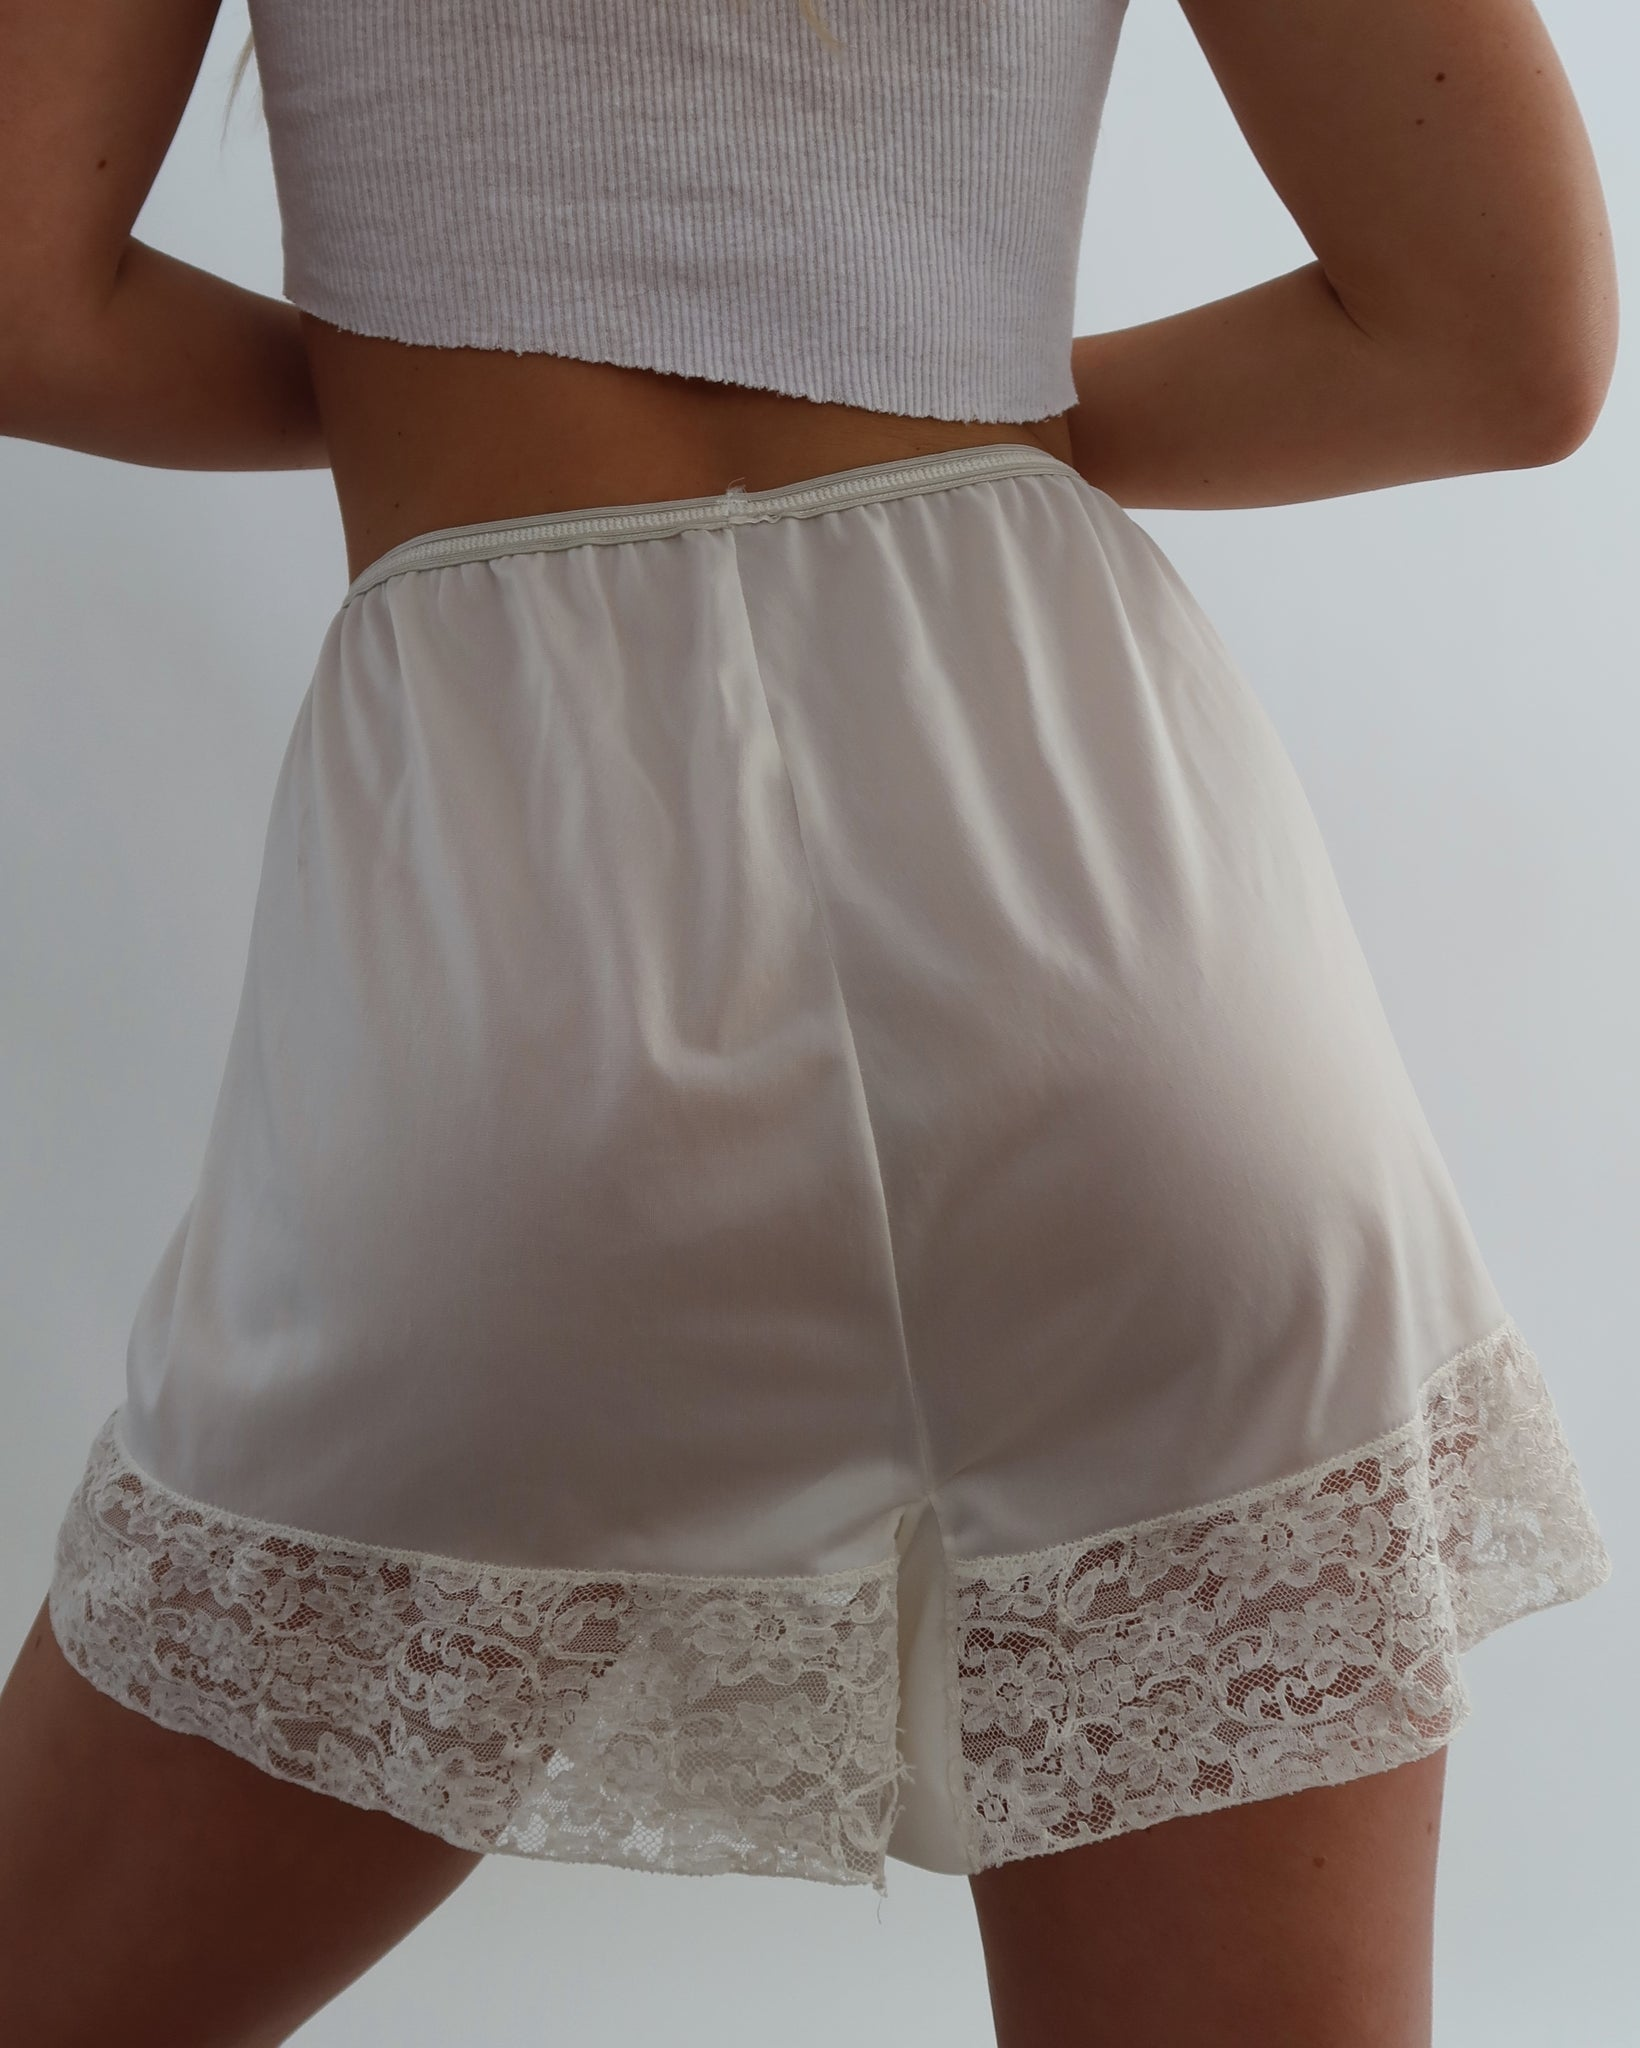 Silky Lounge Shorts (S-M)